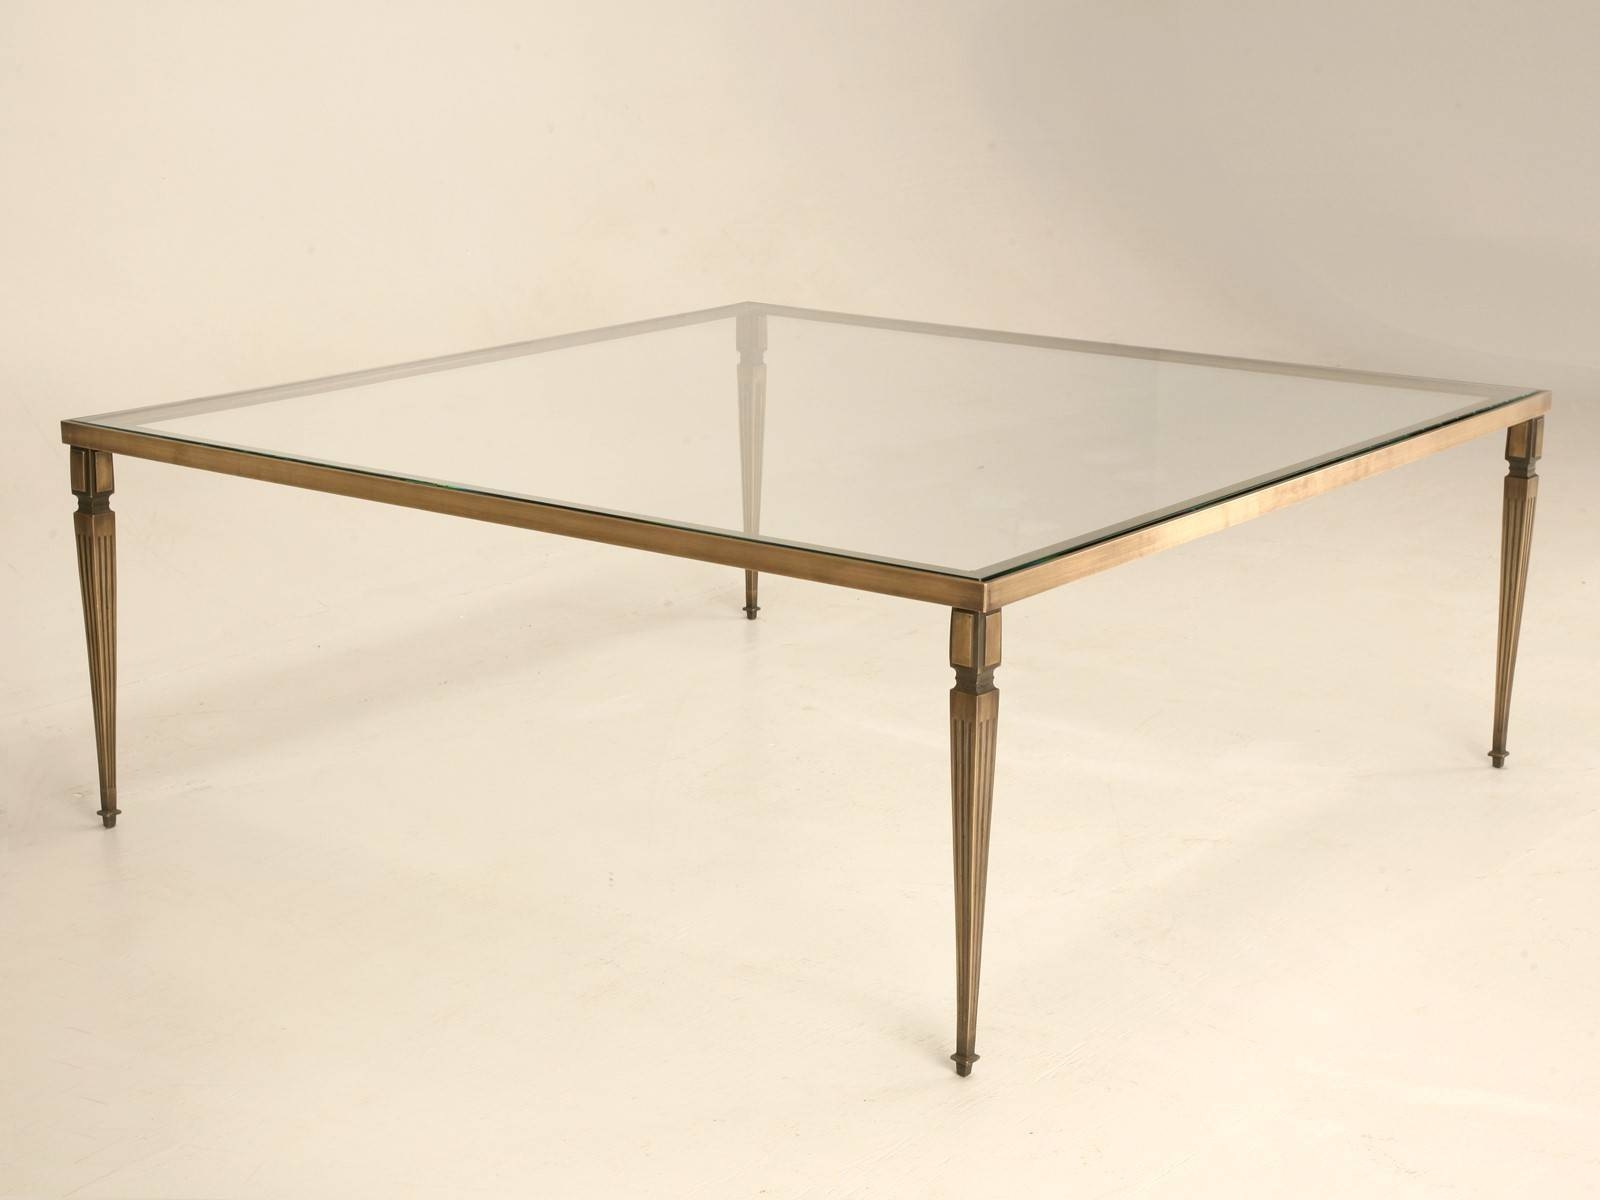 30 ideas of large square glass coffee tables Large square coffee table